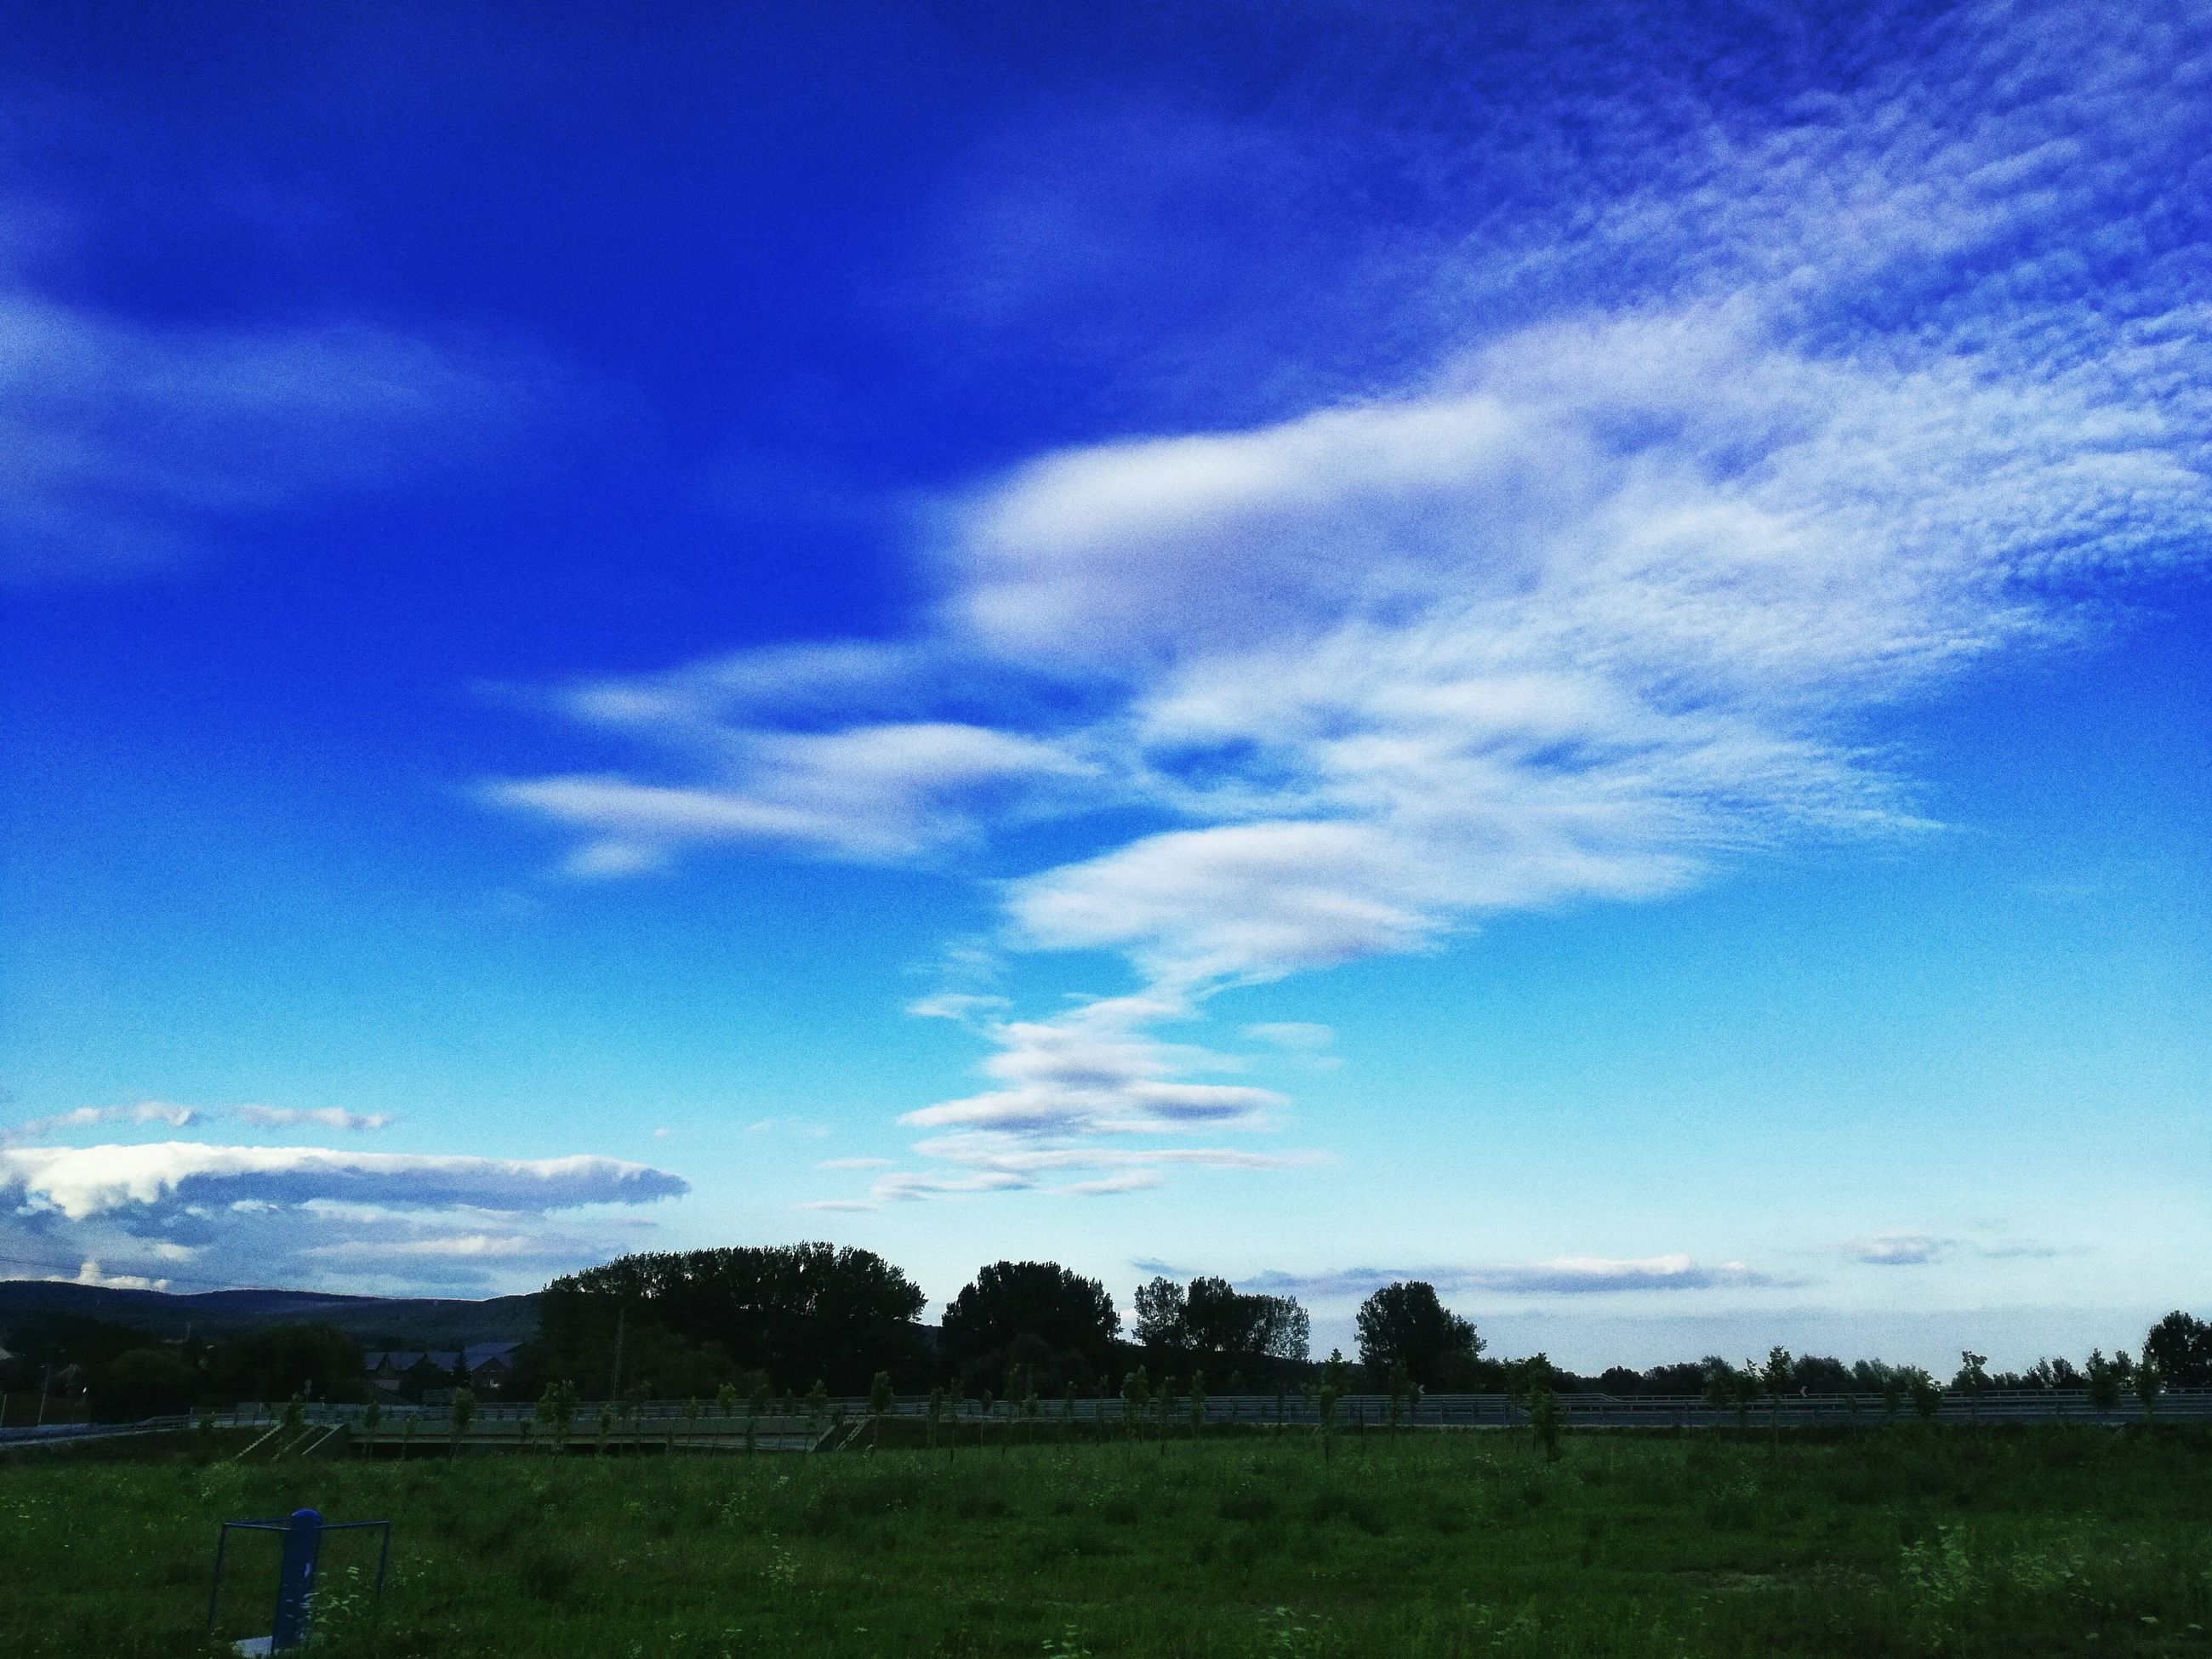 blue, landscape, tranquil scene, tree, sky, tranquility, scenics, beauty in nature, solitude, growth, nature, field, cloud, non-urban scene, remote, day, countryside, outdoors, rural scene, calm, agriculture, cloud - sky, green color, green, farm, majestic, no people, grassy